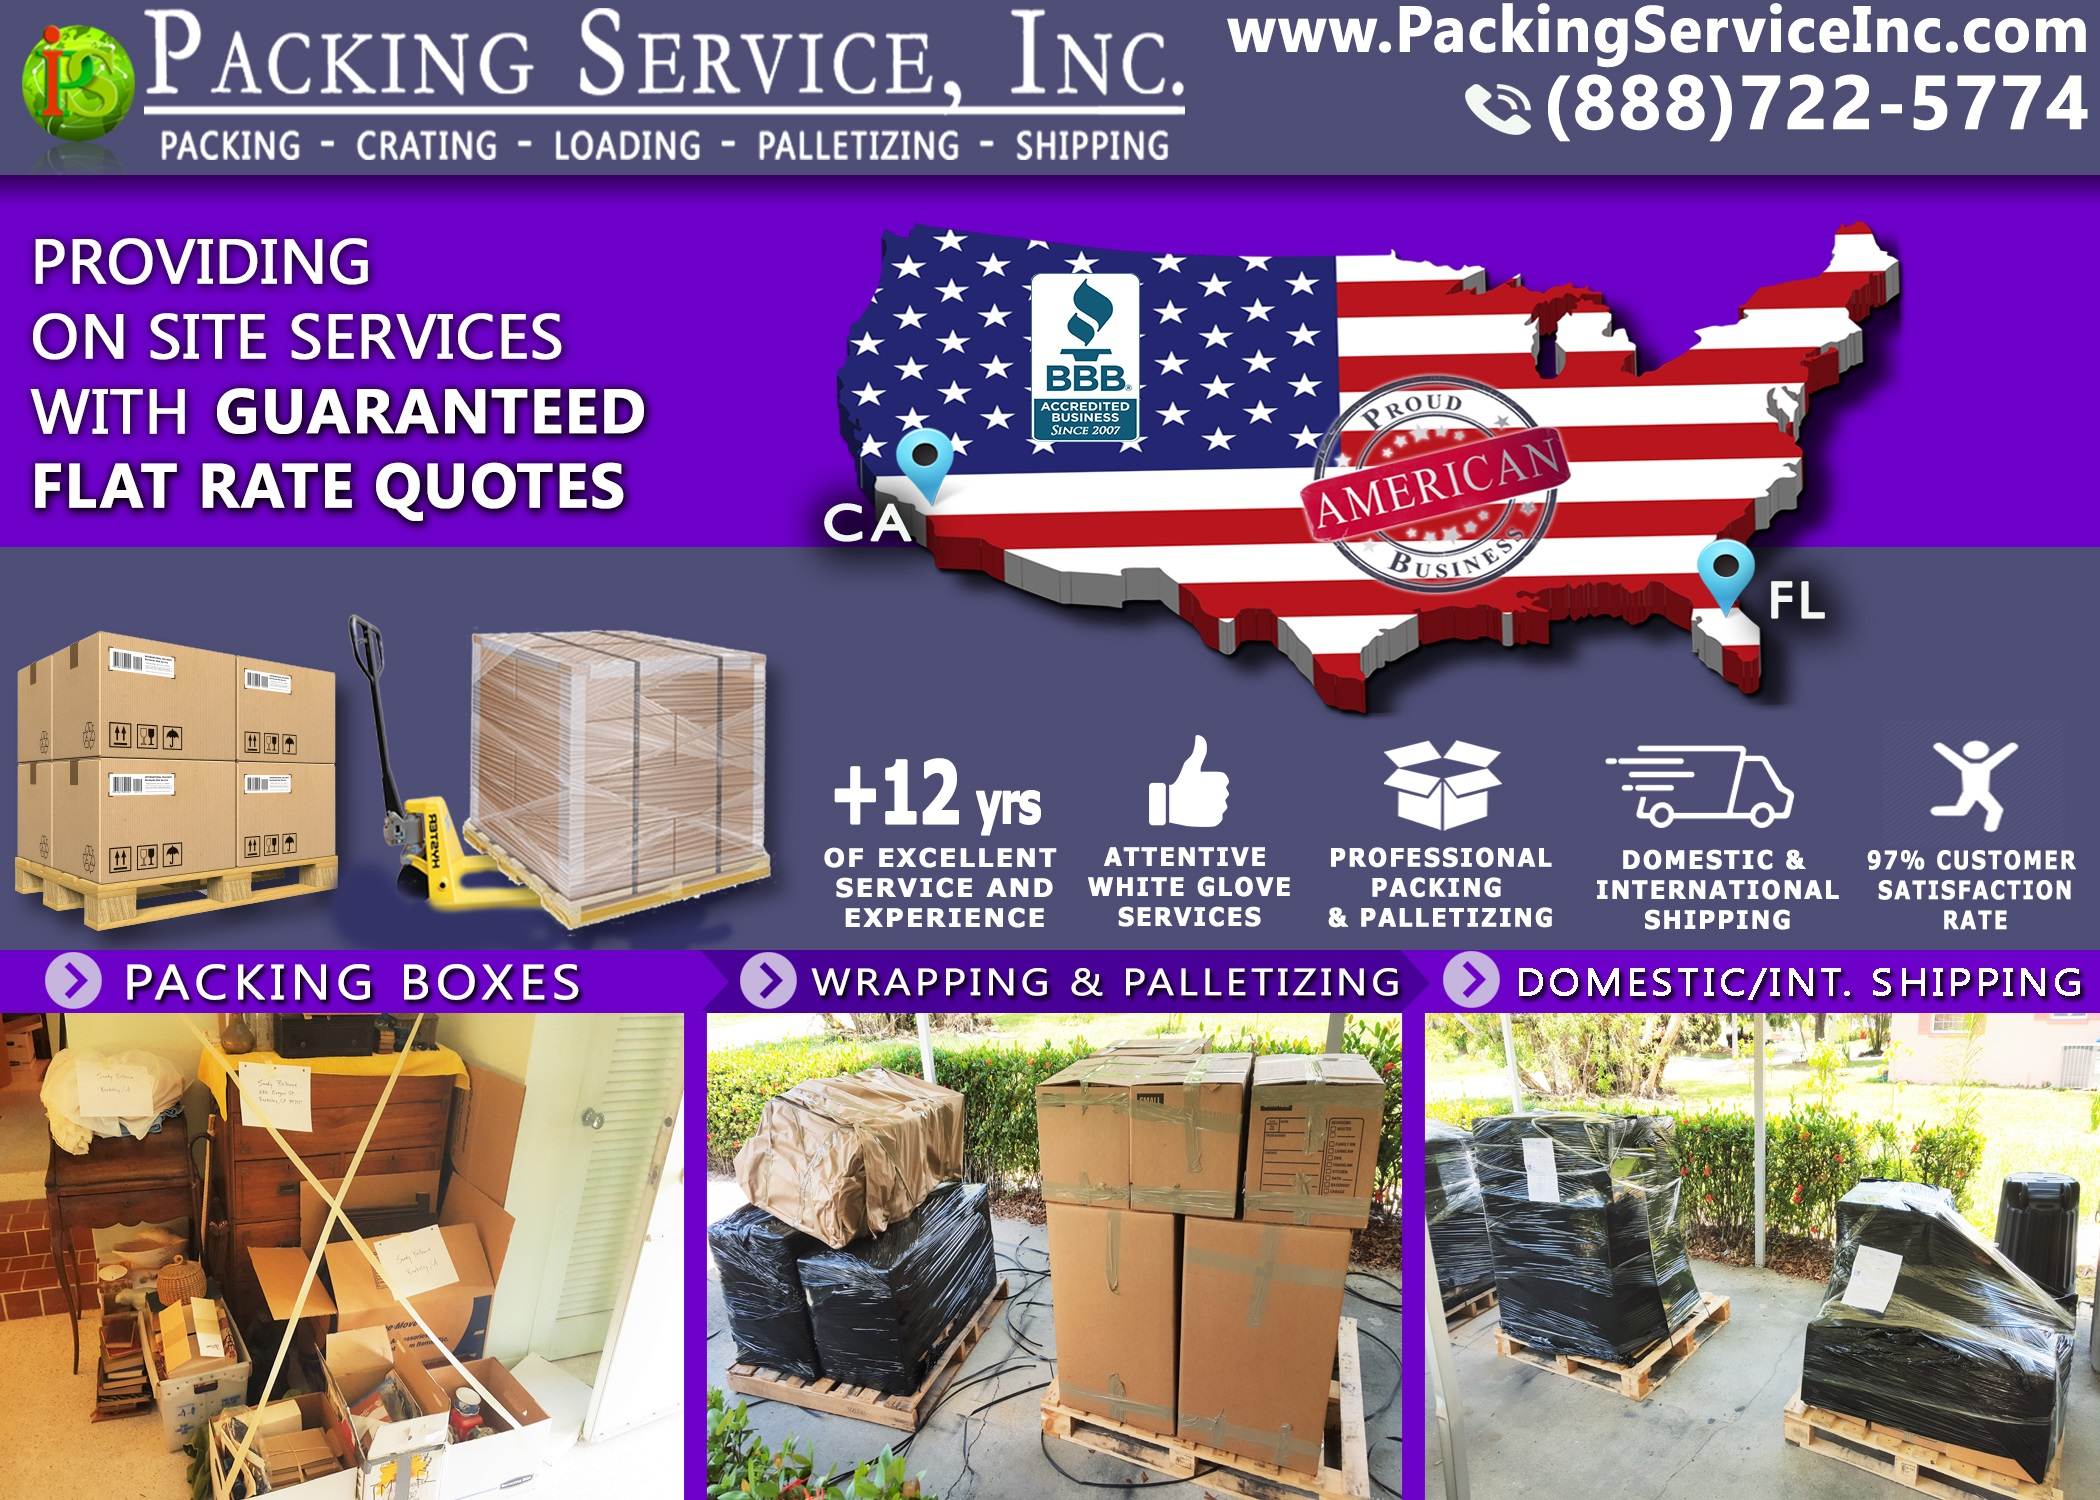 Packing Boxes, Palletizing and Shipping from Florida to California with Packing Service, Inc. - 224